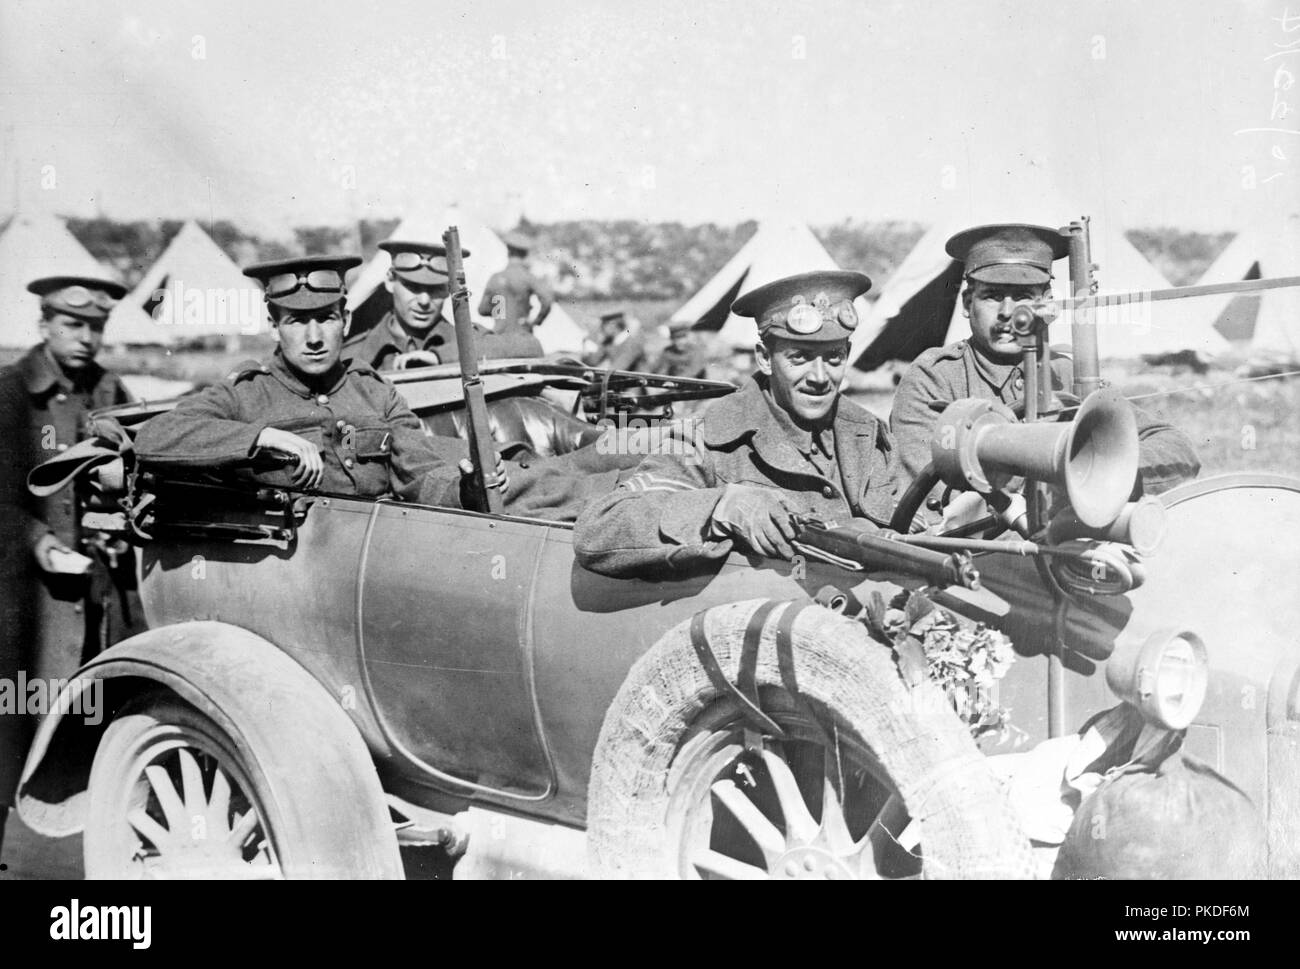 English Motor scouts in France, English soldiers during World War I. - Stock Image